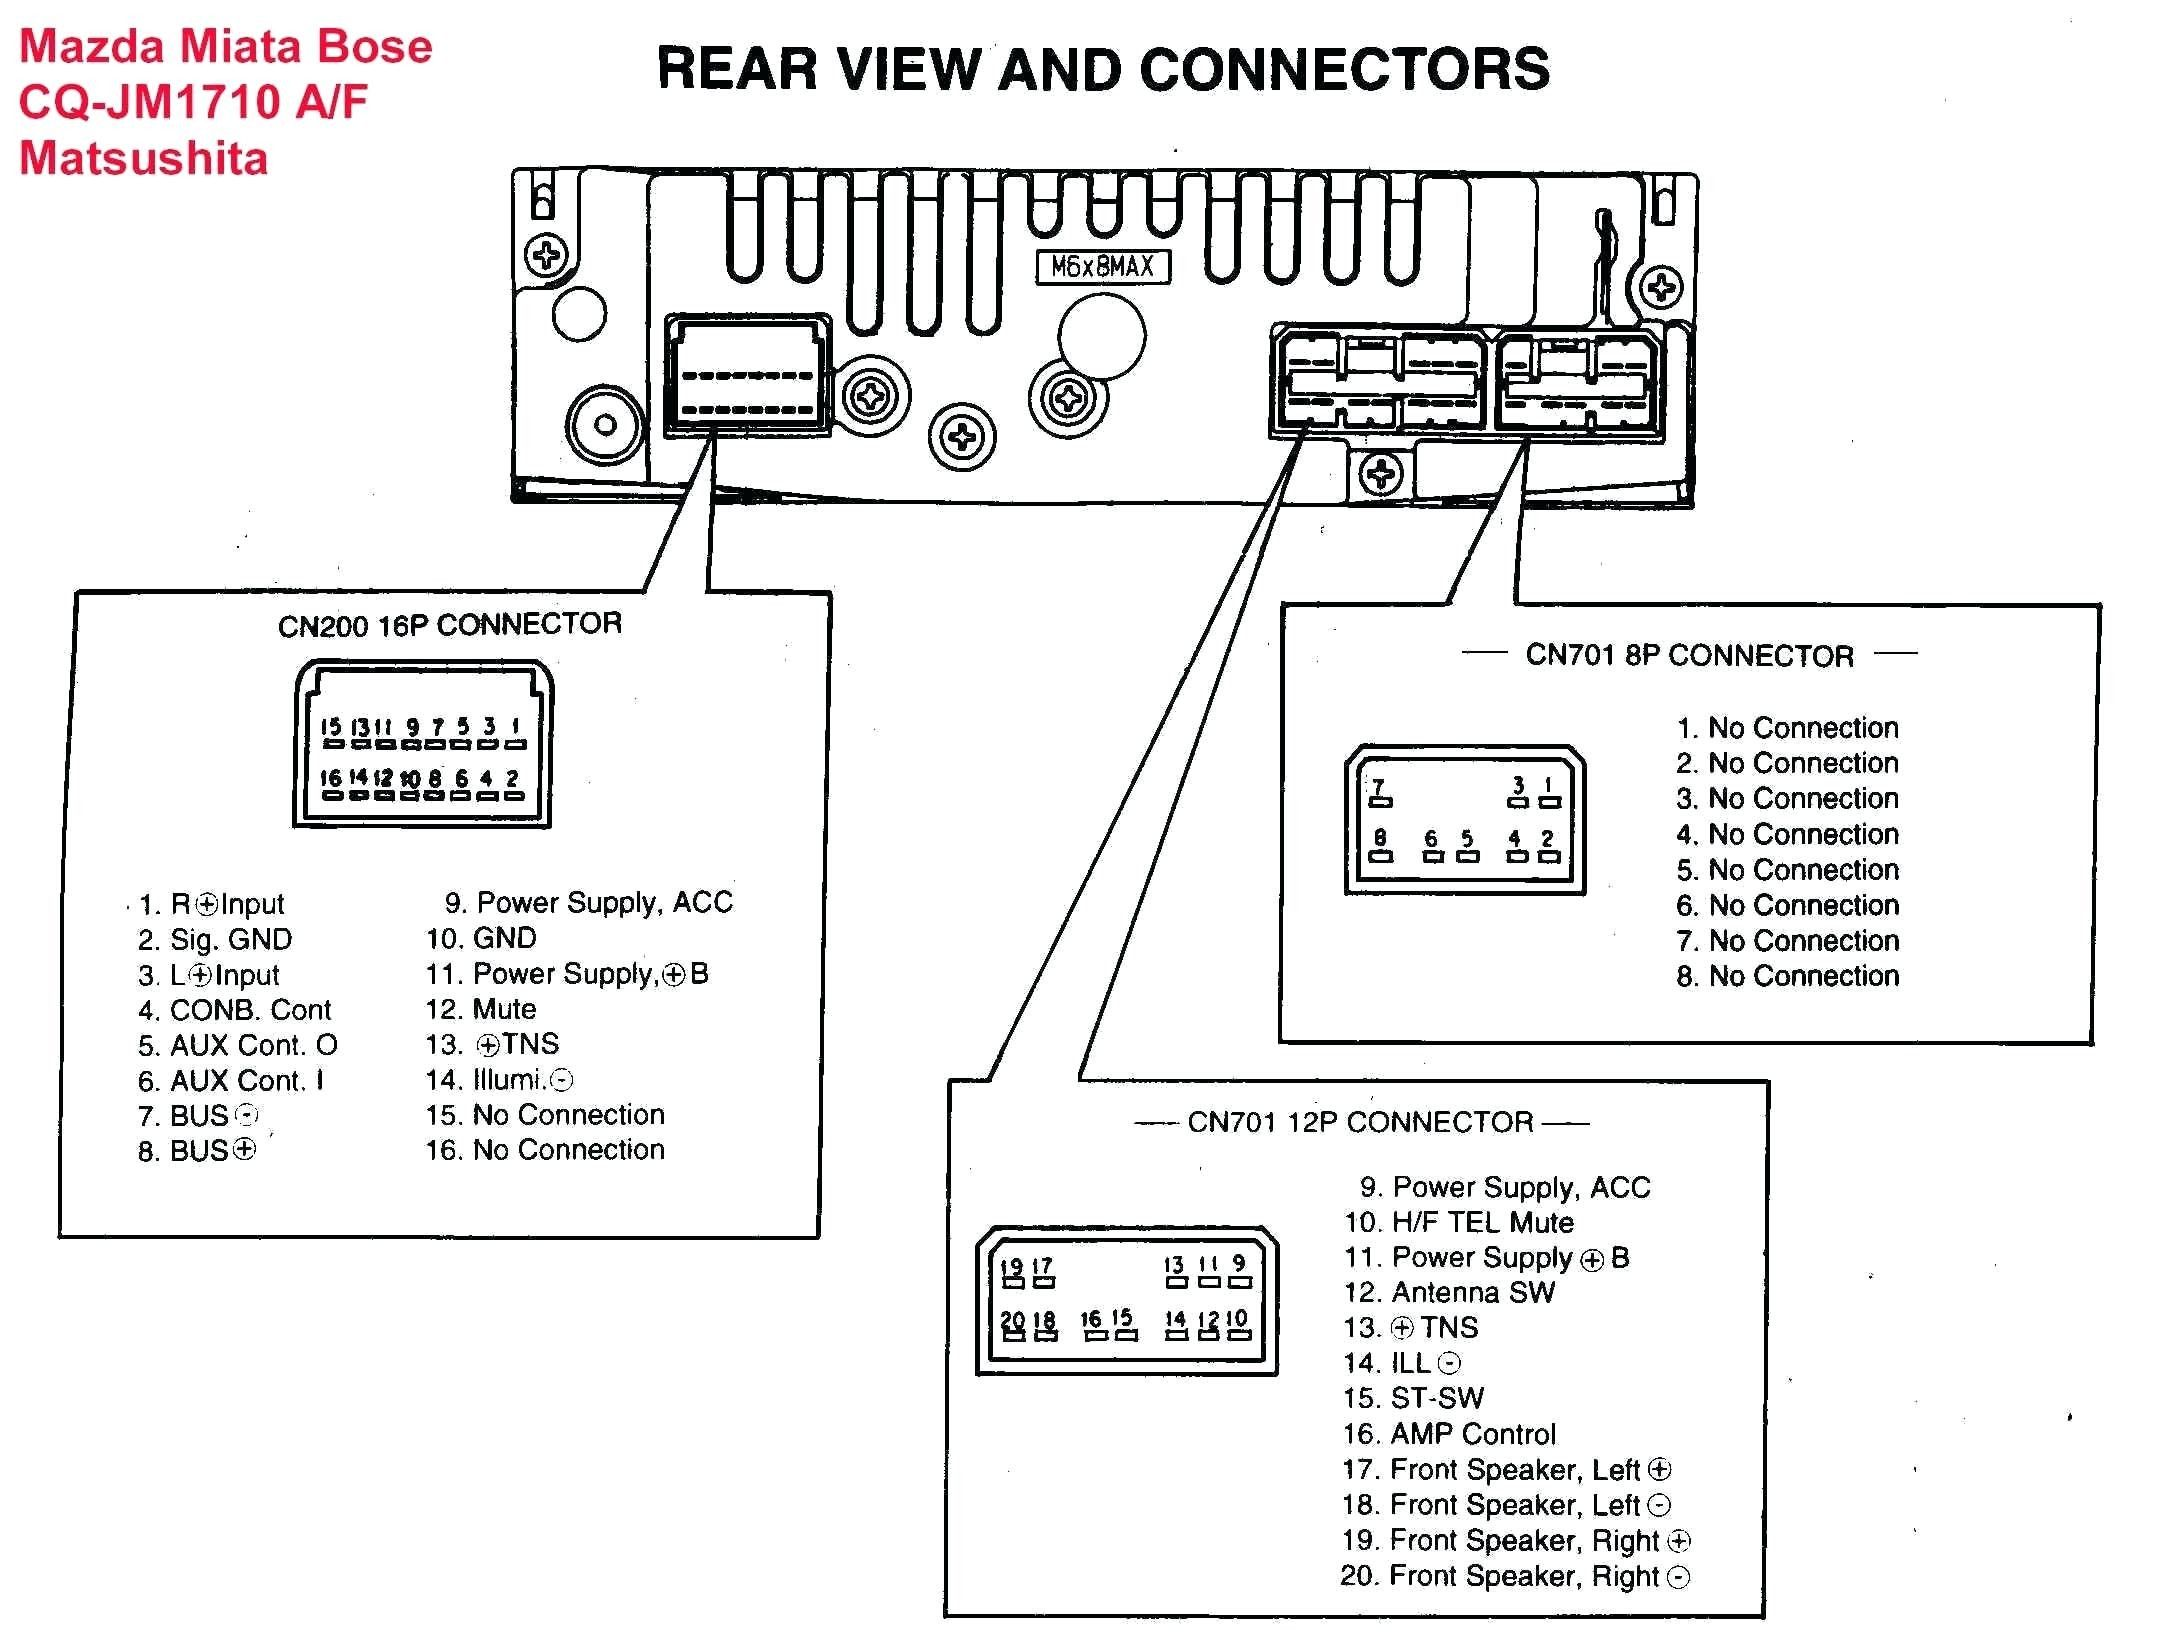 Sony Cdx Gt310 Wiring Diagram from i.pinimg.com